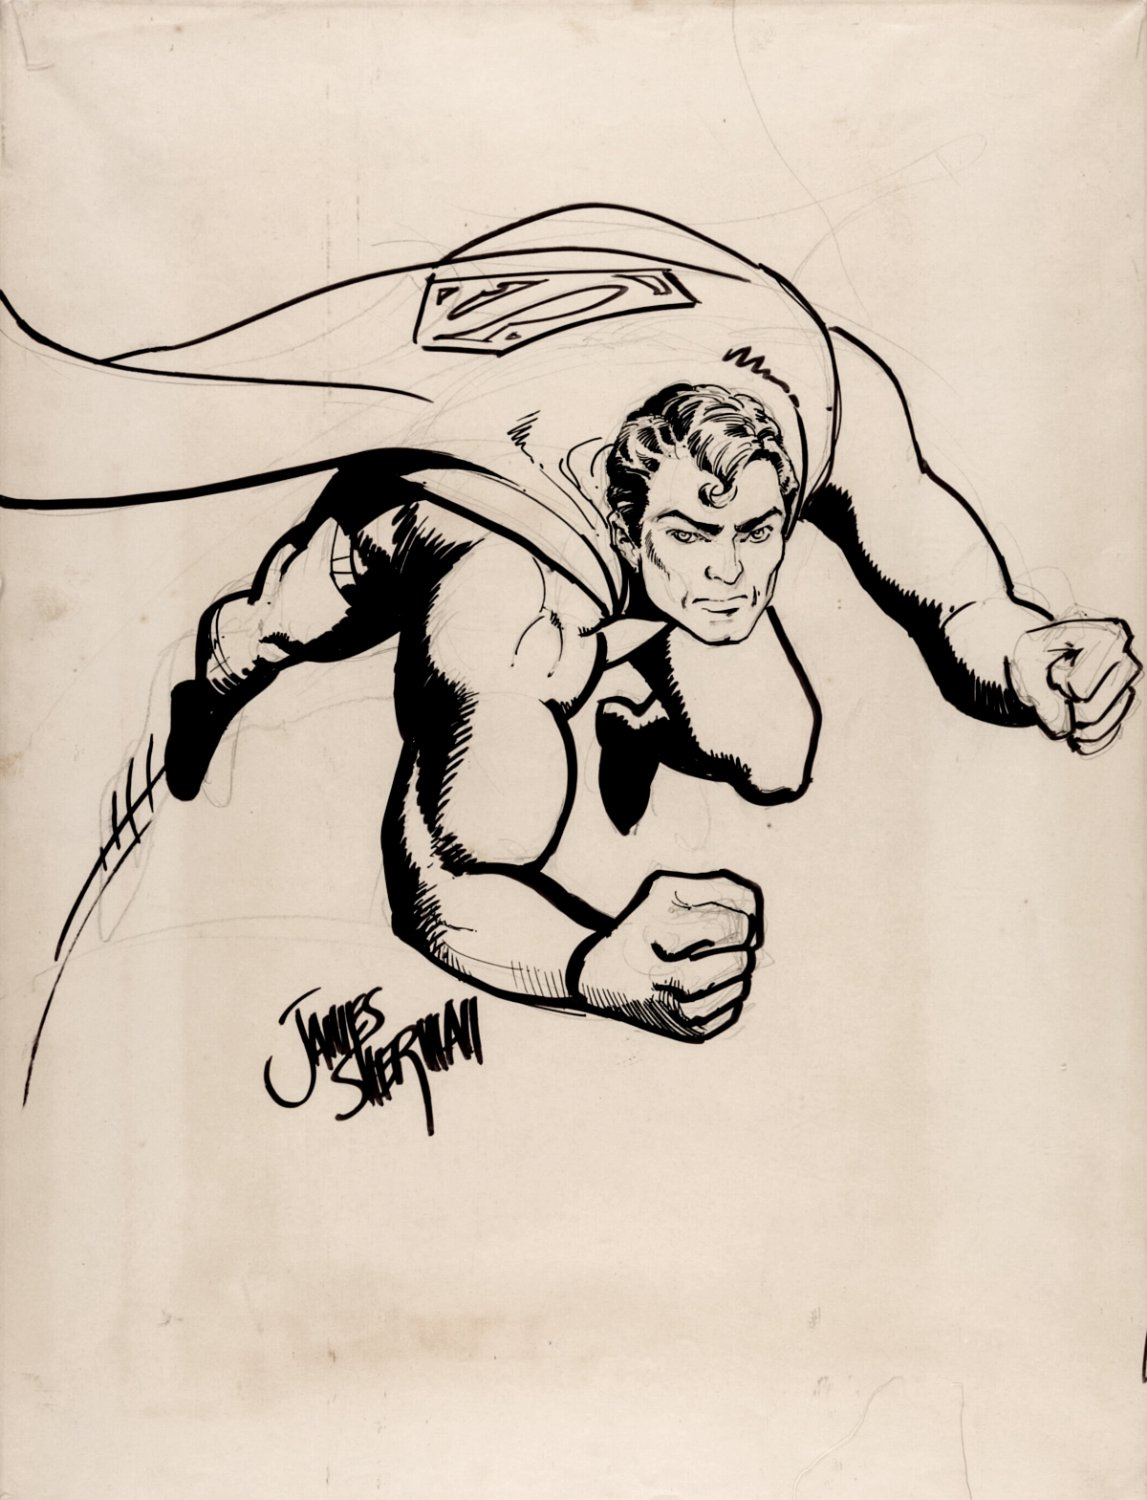 VERY LARGE 1970s Superman Pinup SOLD LIVE ON 'DUELING DEALERS PRO-AM' EPISODE #7 PODCAST ON 9-14-2021